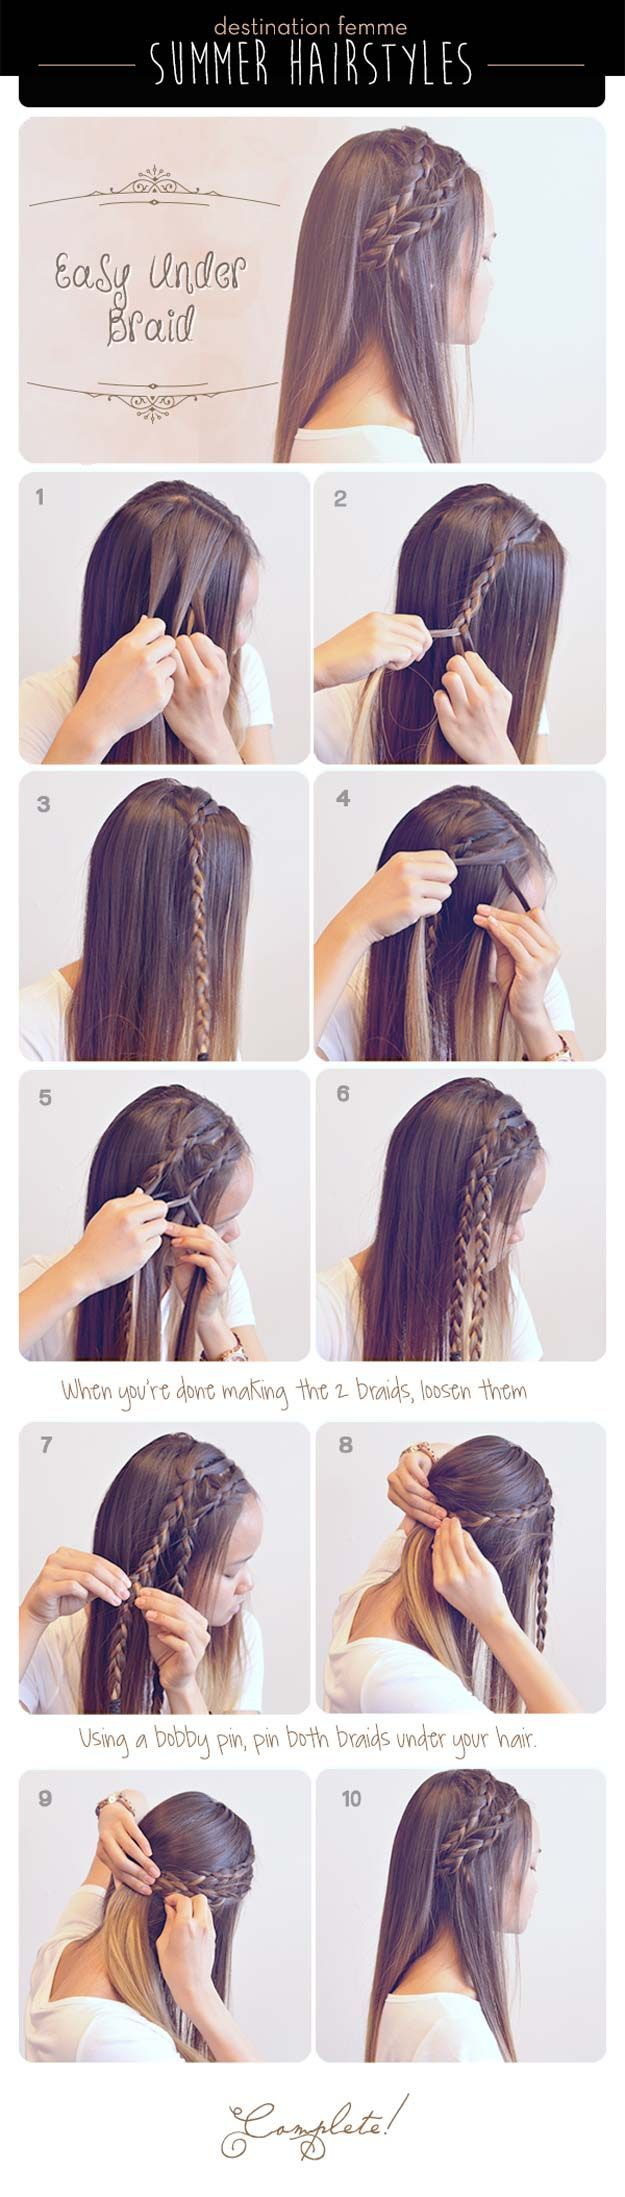 Best Hair Braiding Tutorials - Easy Under Braid - Easy Step by Step Tutorials for Braids - How To Braid Fishtail, French Braids, Flower Crown, Side Braids, Cornrows, Updos - Cool Braided Hairstyles for Girls, Teens and Women - School, Day and Evening, Boh